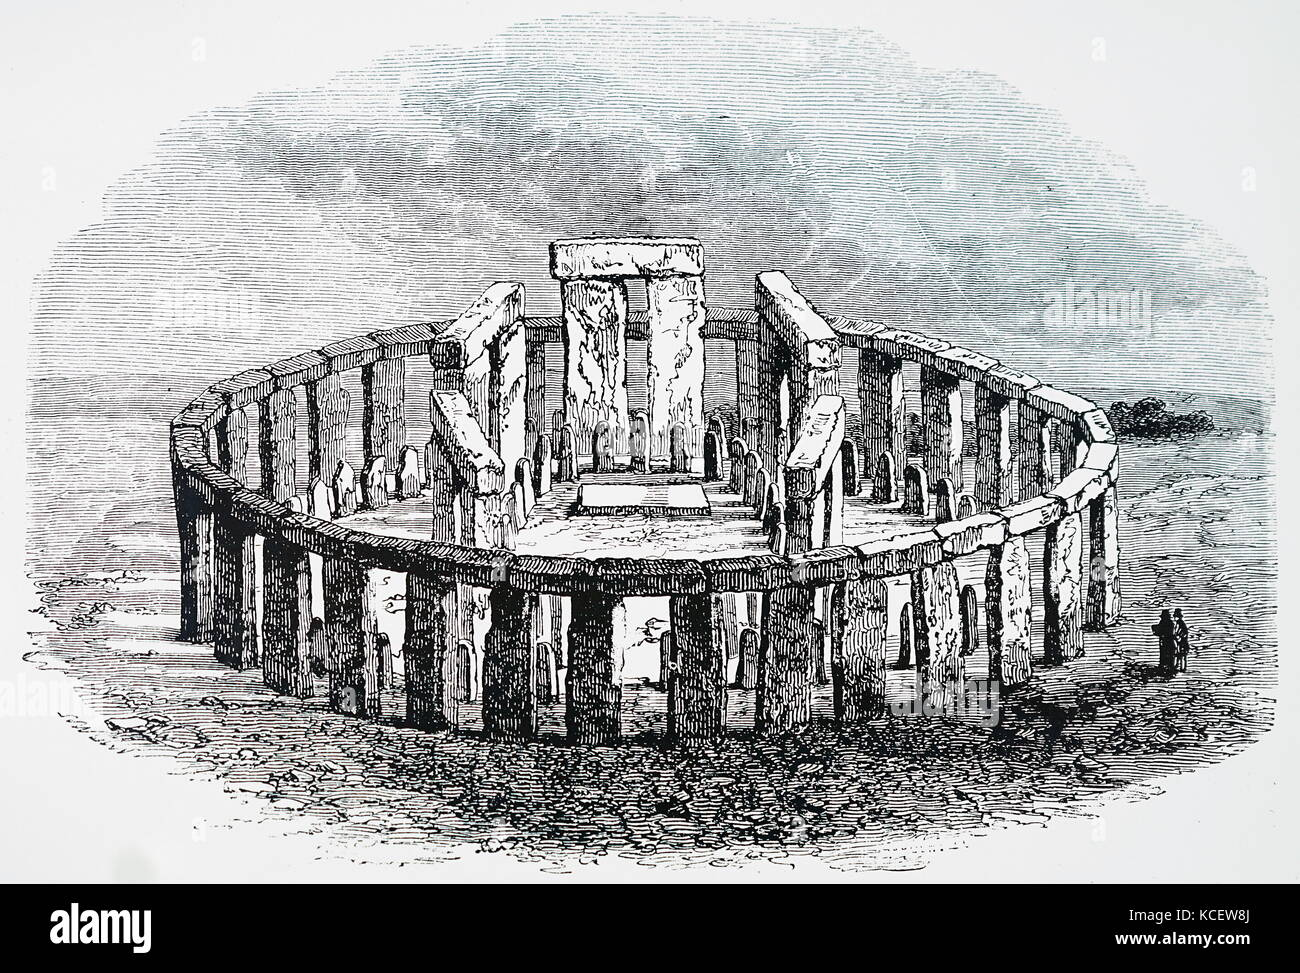 Impression of Stonehenge as it would be if restored. Dated 19th Century - Stock Image